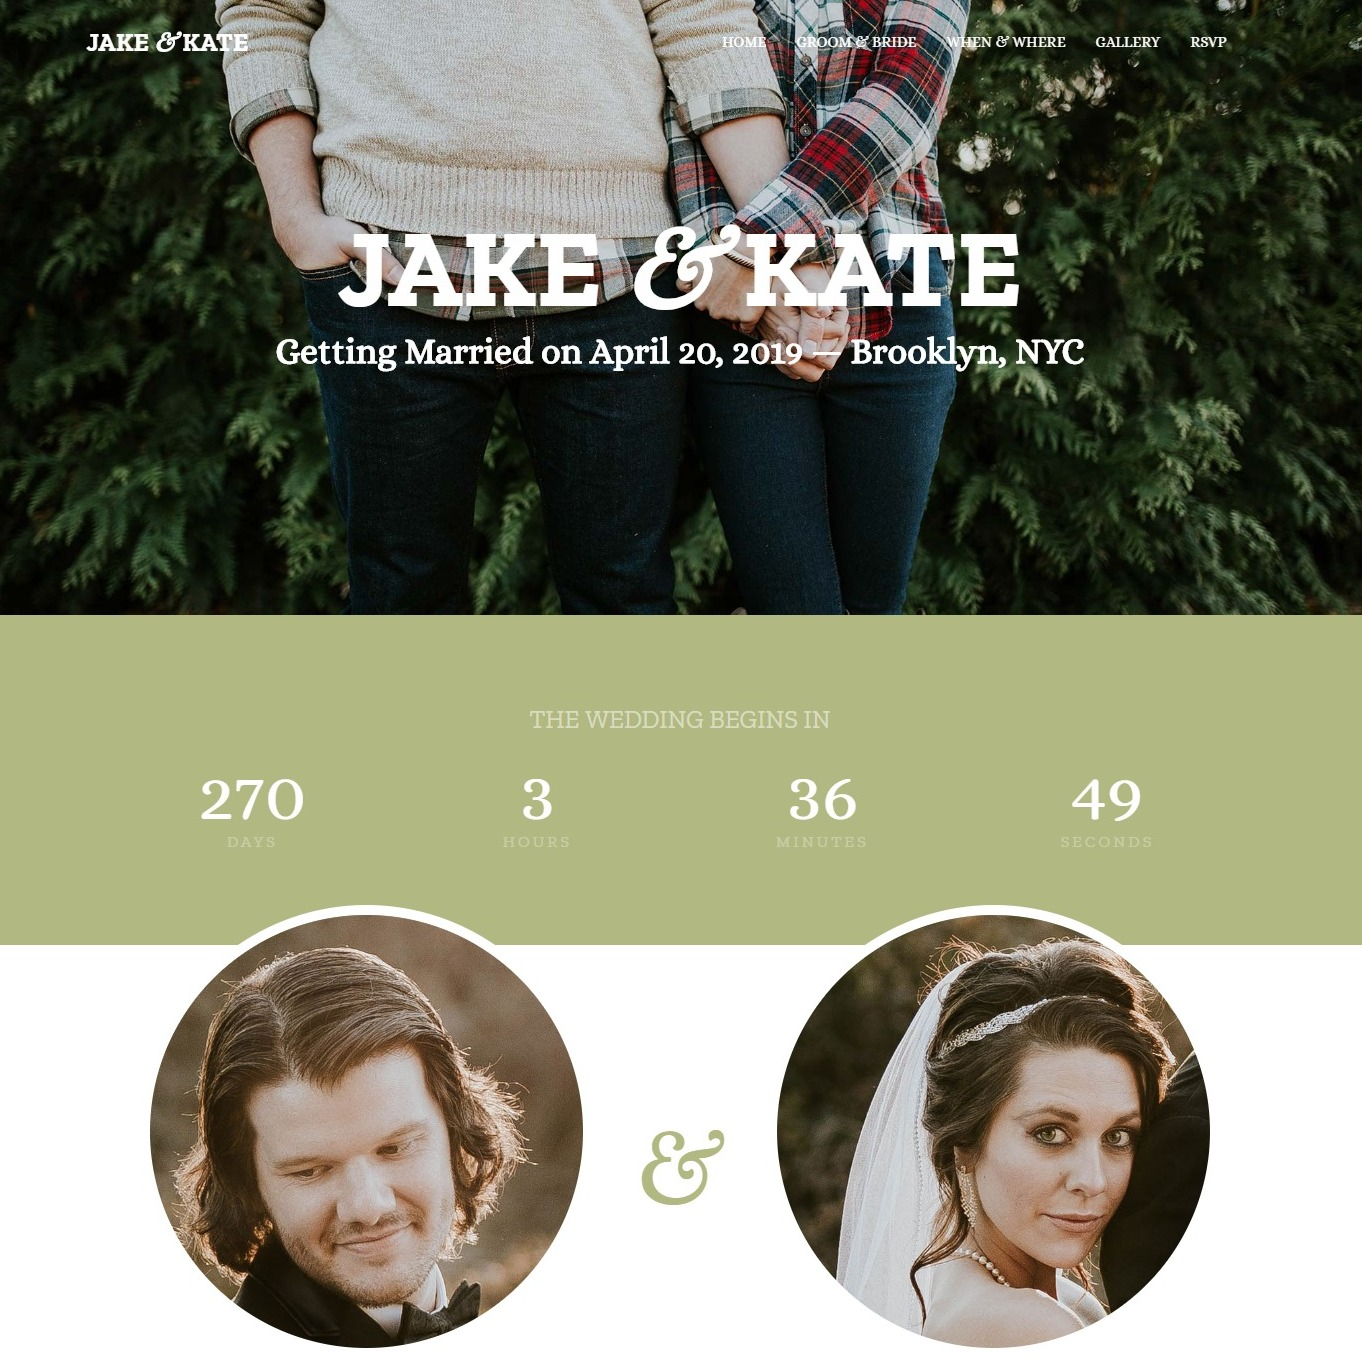 Wedding--free-wedding-website-template